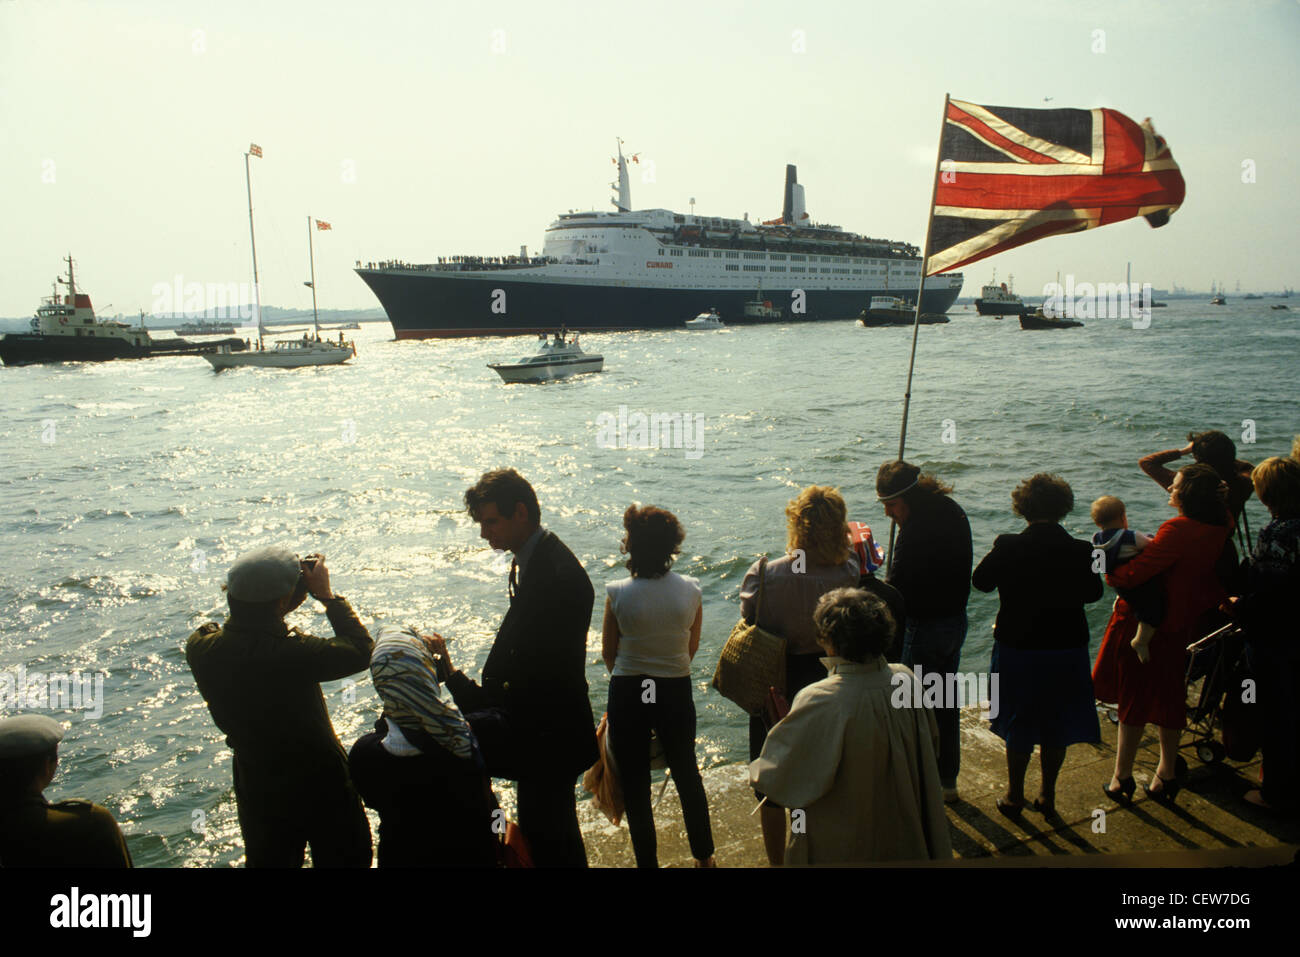 Queen Elizabeth II ii 2 QE2 sets sails for the Falklands. Family and friends send them on their way. HOMER SYKES - Stock Image